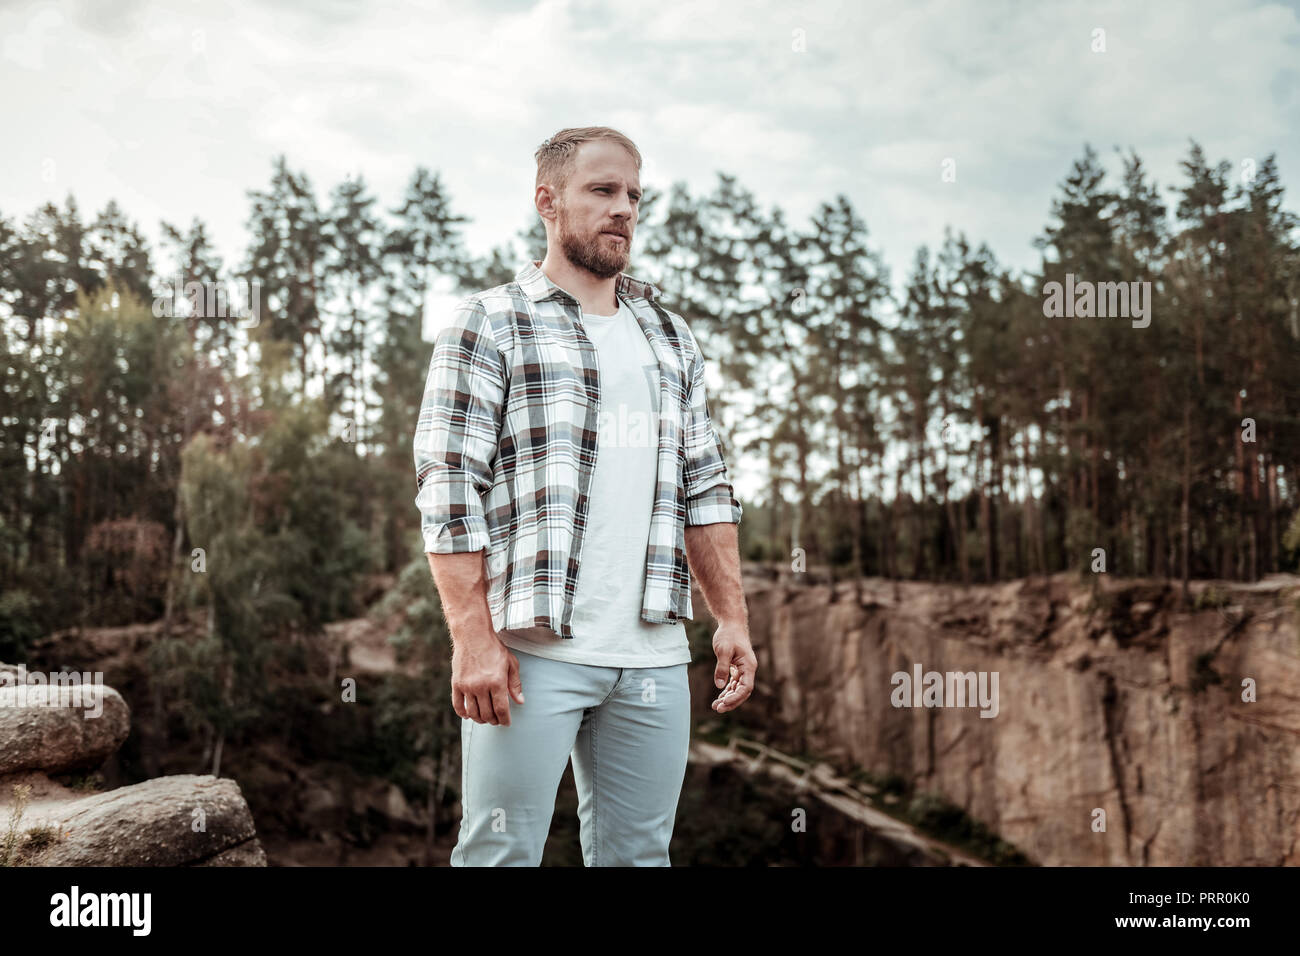 Bearded man wearing jeans and squared shirt standing in the rocky surroundings - Stock Image